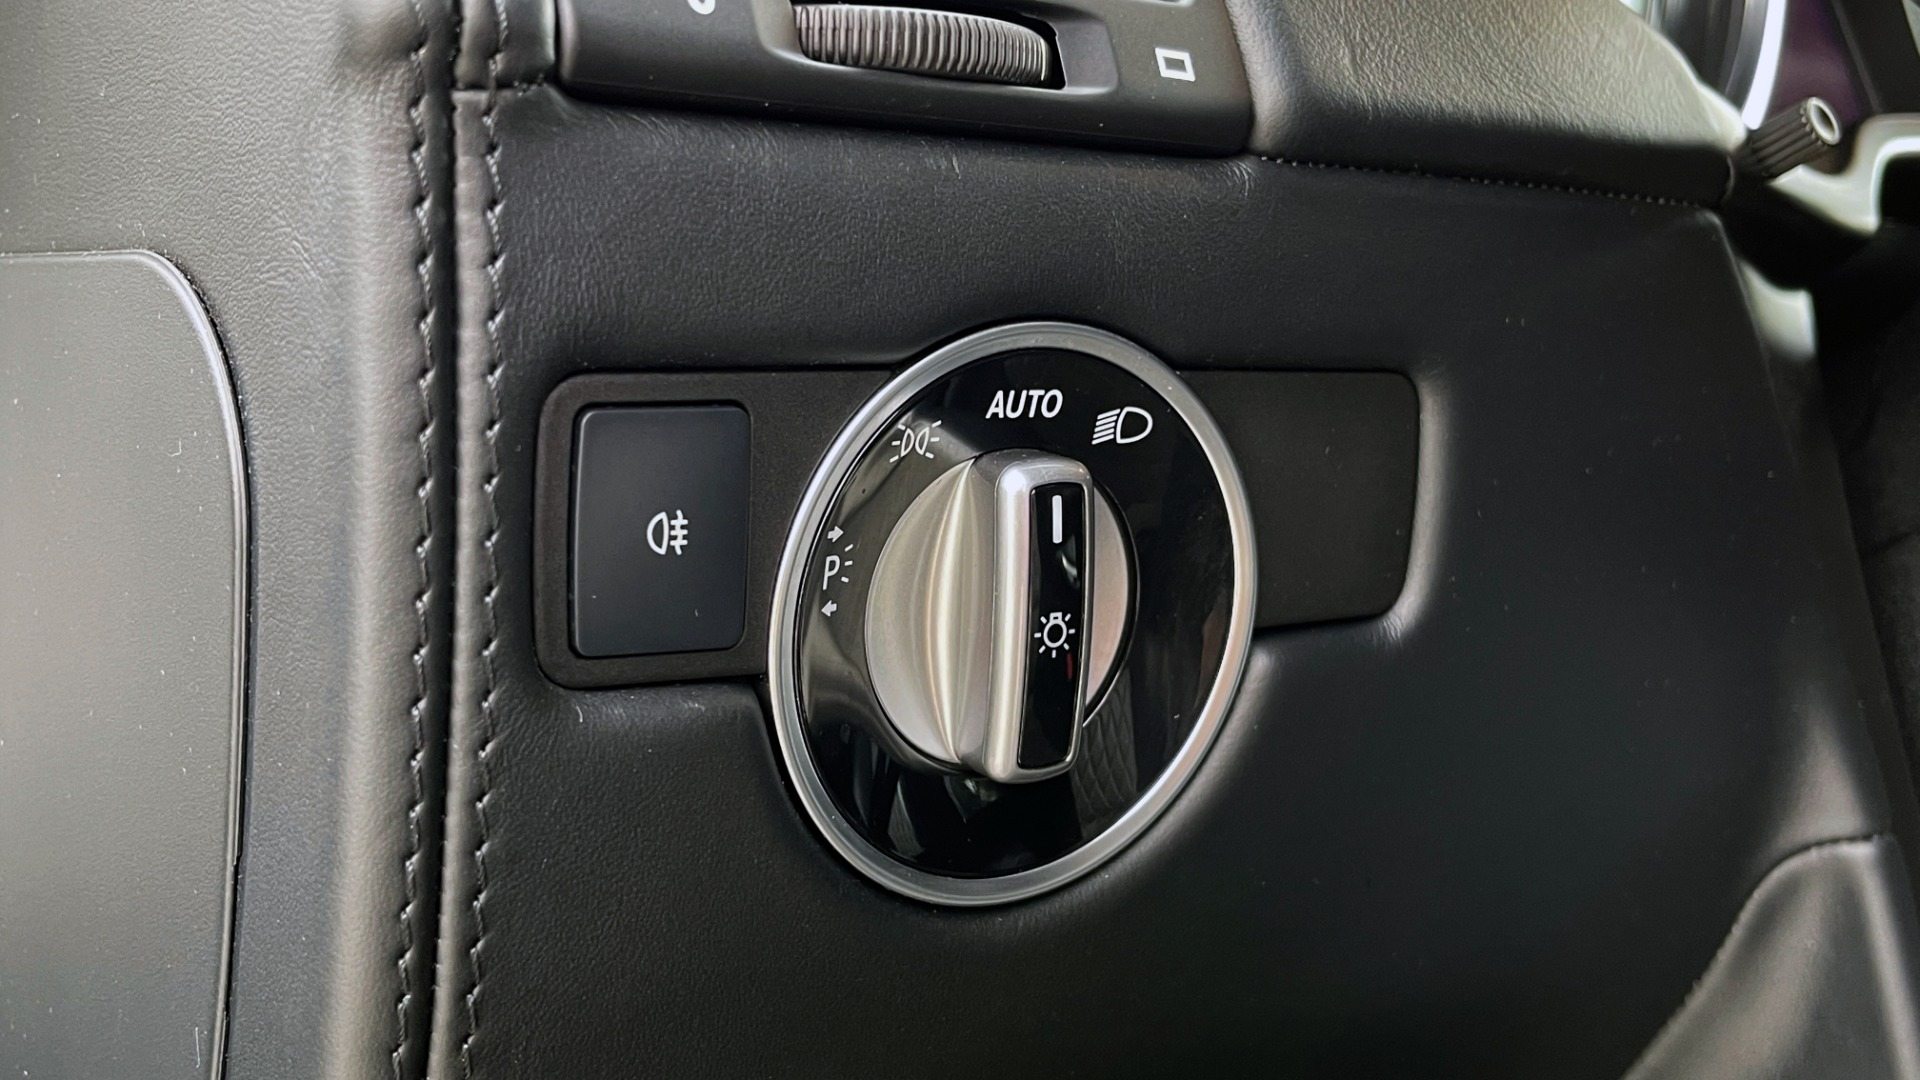 Used 2017 Mercedes-Benz G-CLASS AMG G 63 / DESIGNO PKG / NAV / SUNROOF / H/K SND / REARVIEW for sale $124,999 at Formula Imports in Charlotte NC 28227 32